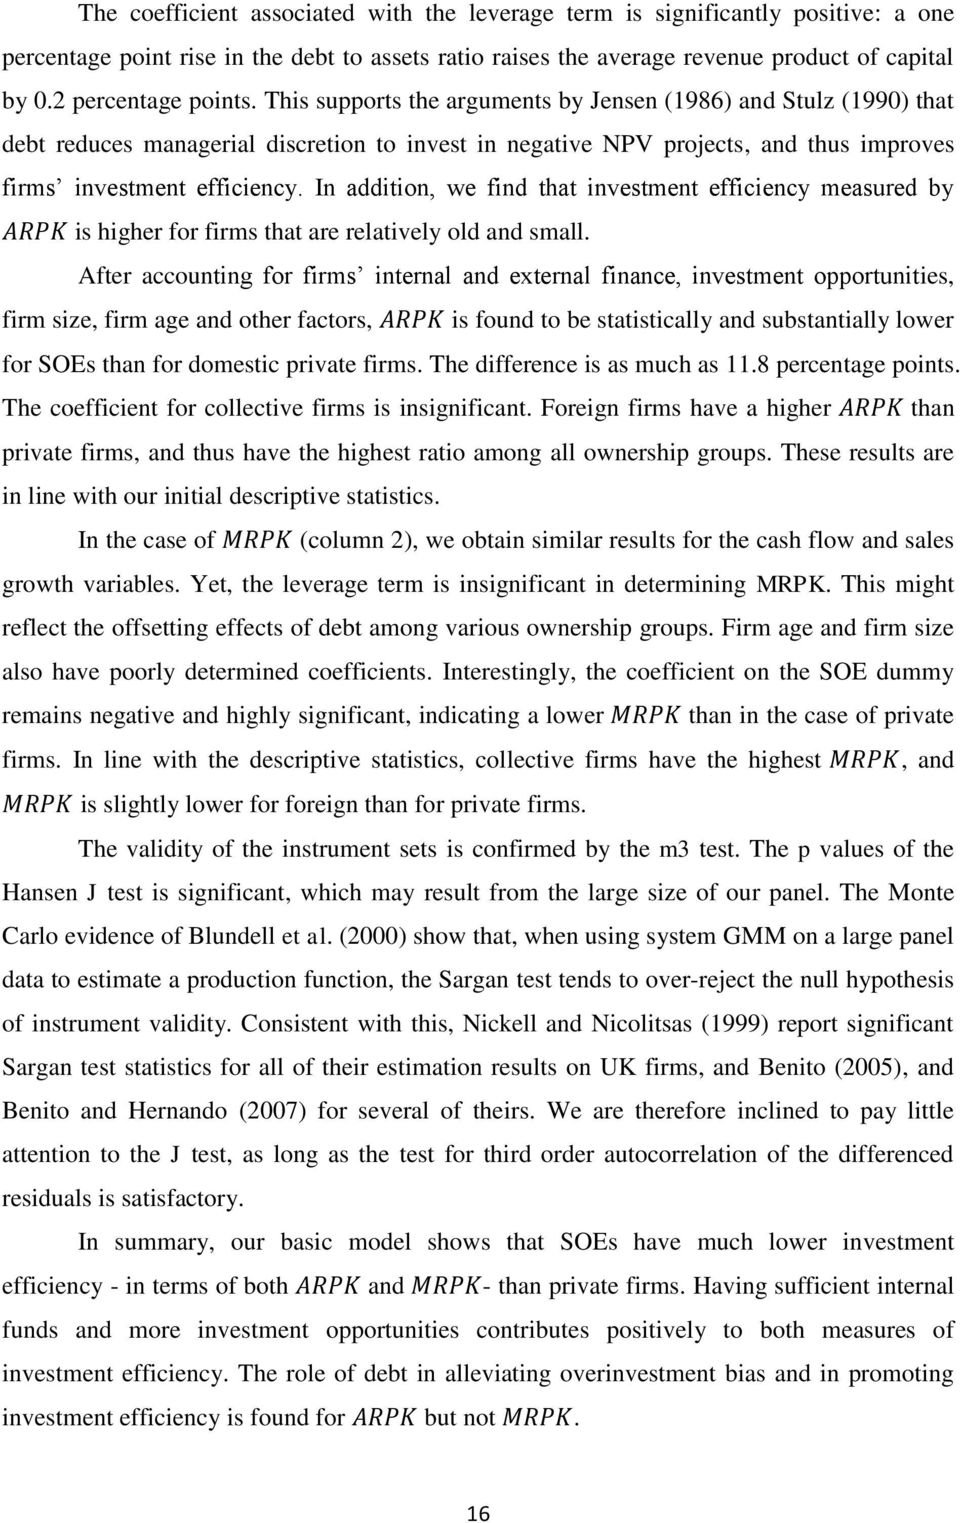 This supports the arguments by Jensen (1986) and Stulz (1990) that debt reduces managerial discretion to invest in negative NPV projects, and thus improves firms investment efficiency.